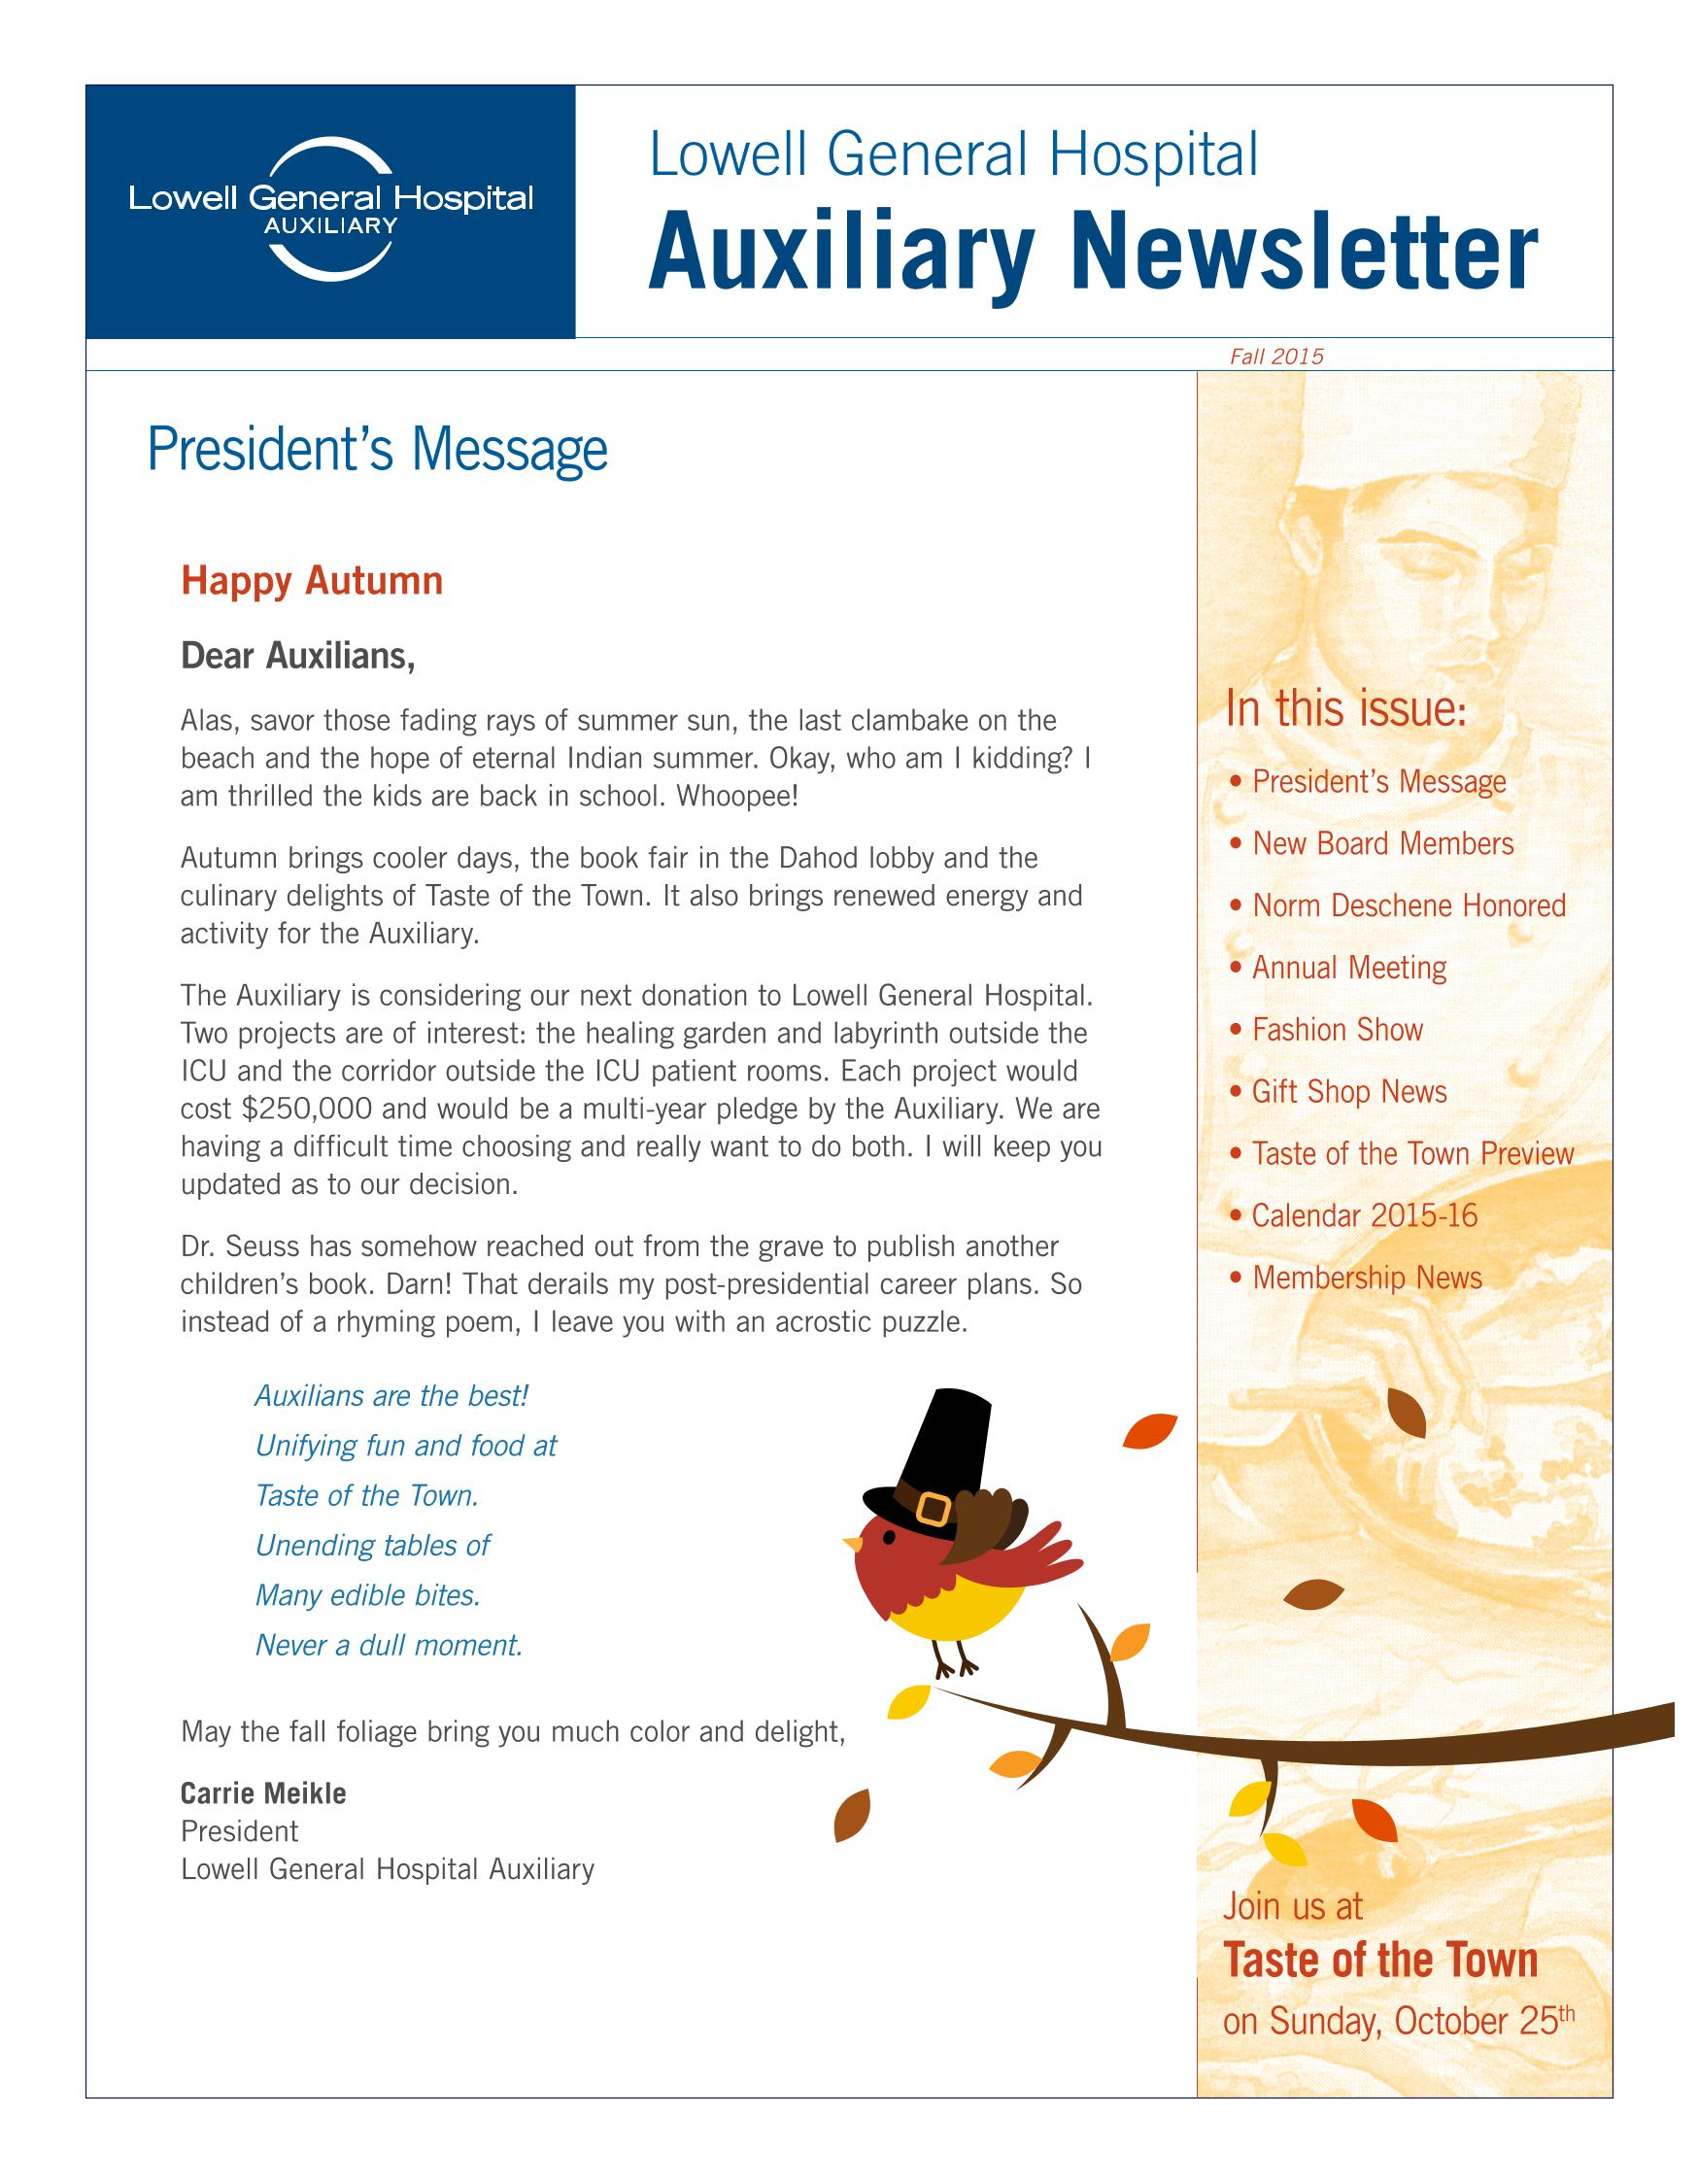 Fall 2015 Auxiliary Newsletter